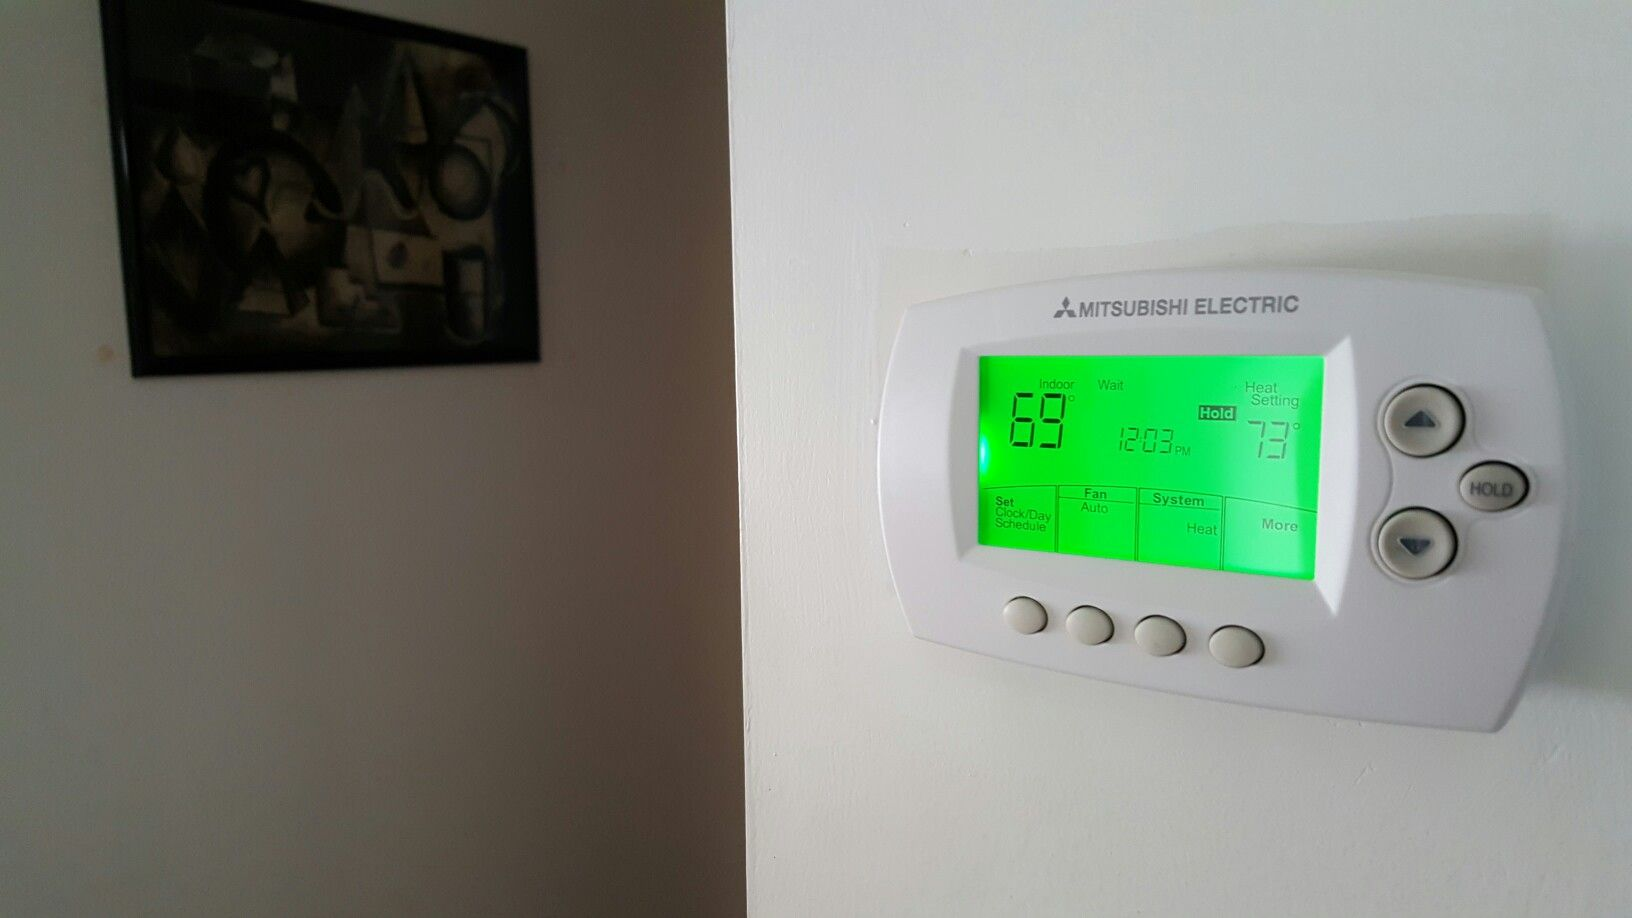 22 Smart Thermostats For Your Home Ideas In 2021 Smart Thermostats Heating And Air Conditioning Thermostat